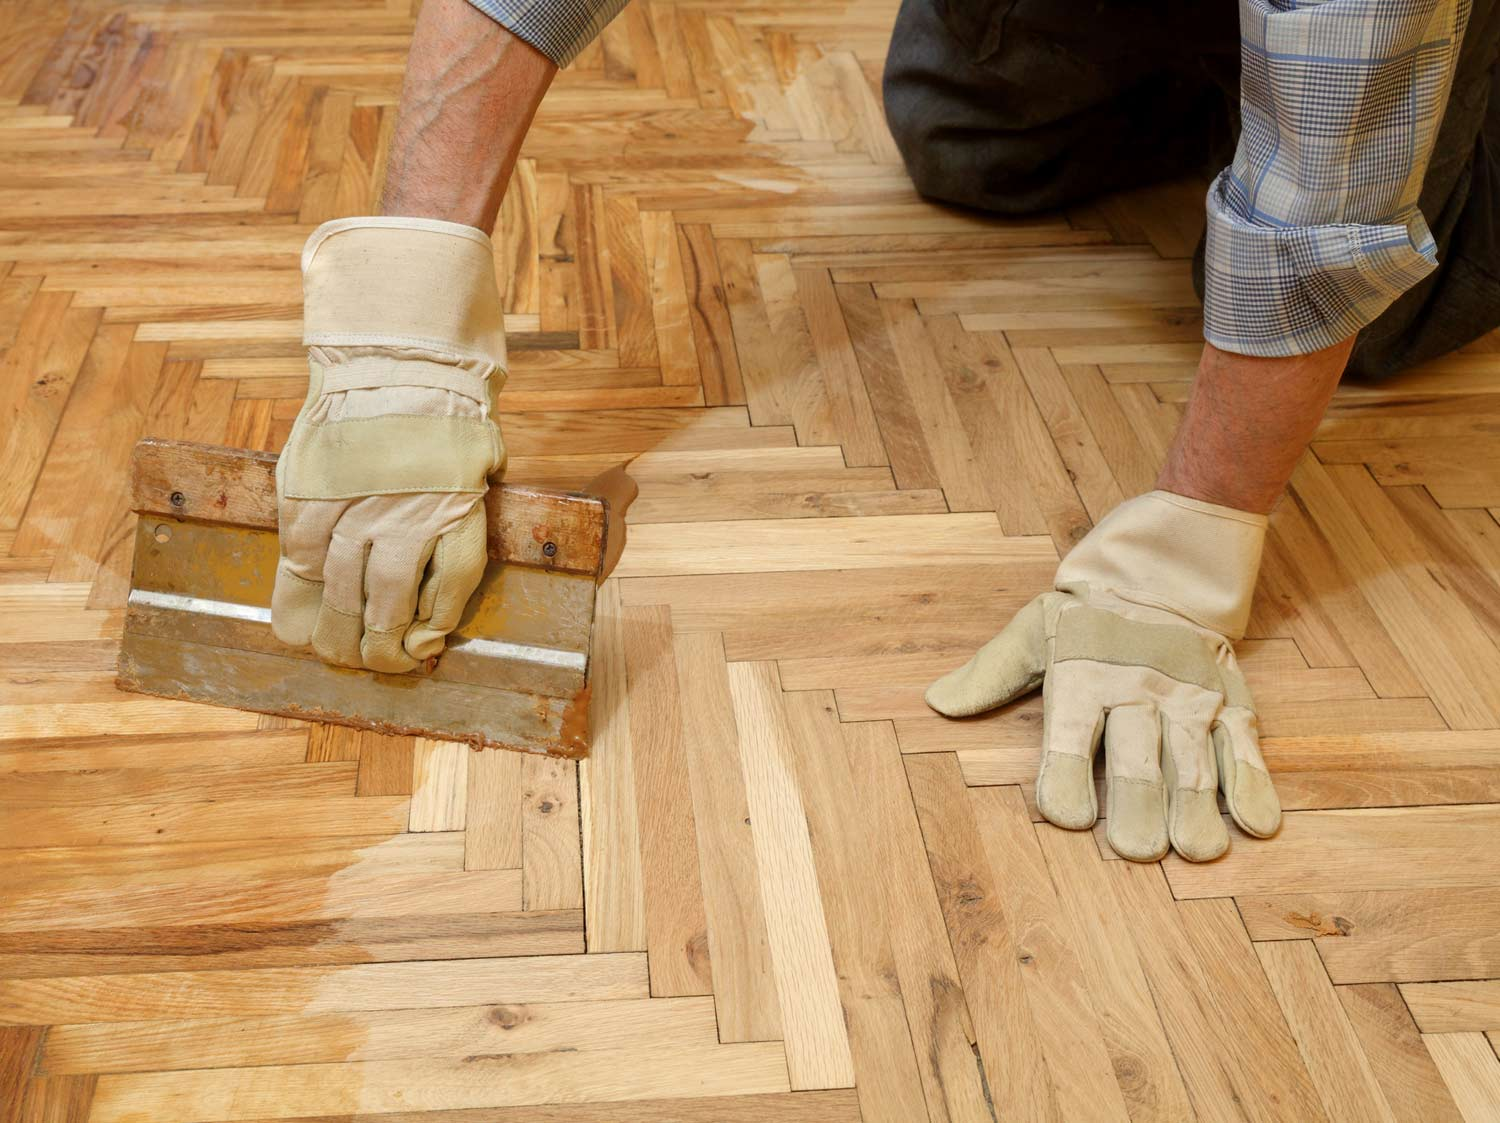 Parquet cire ou vitrifie photos de conception de maison for Poncer parquet vitrifie